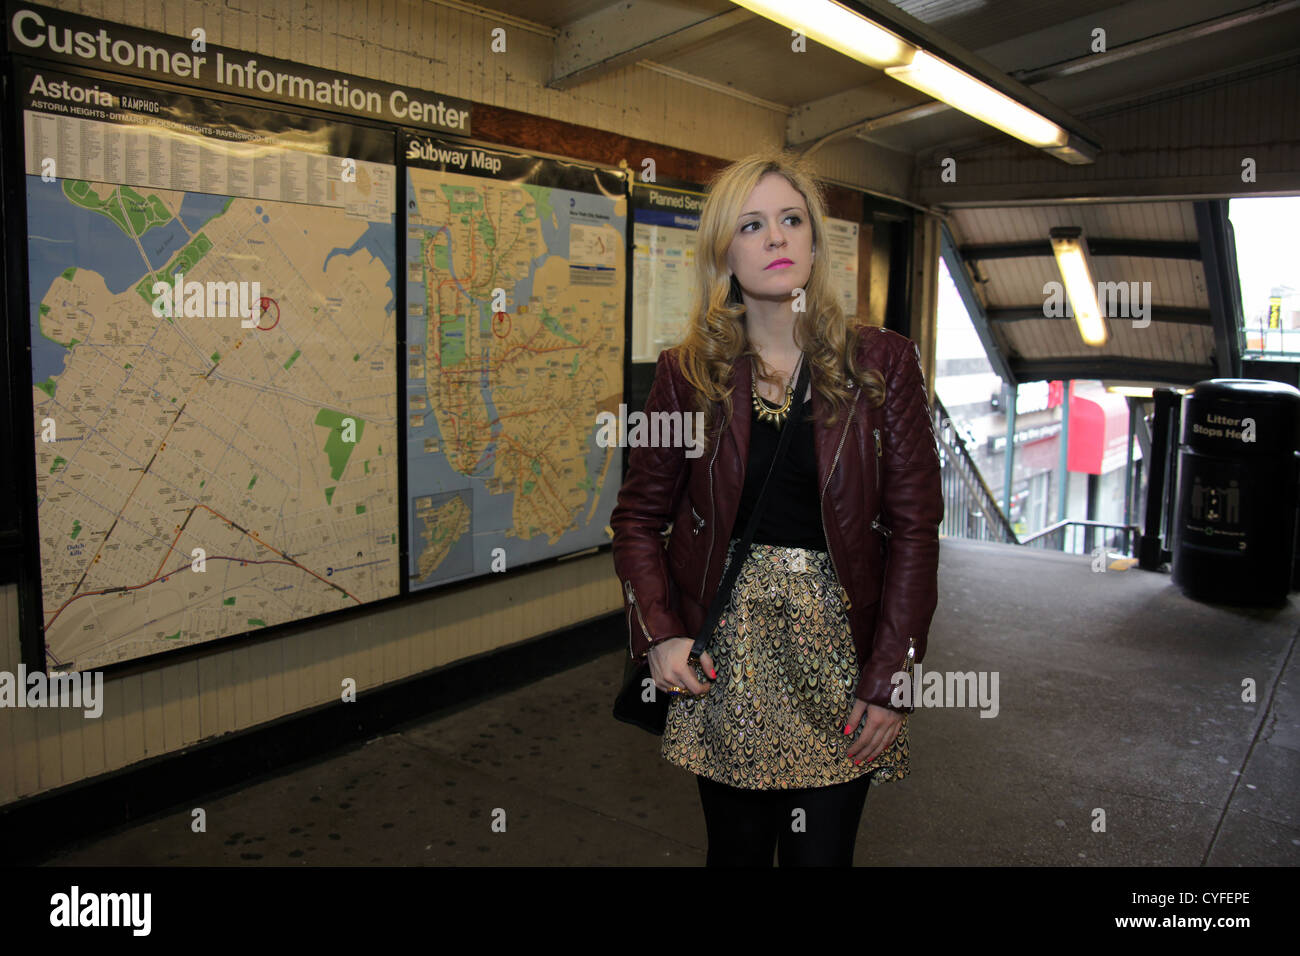 Astoria Subway Map.Woman Standing Near Subway Map At Station In Astoria Queens New